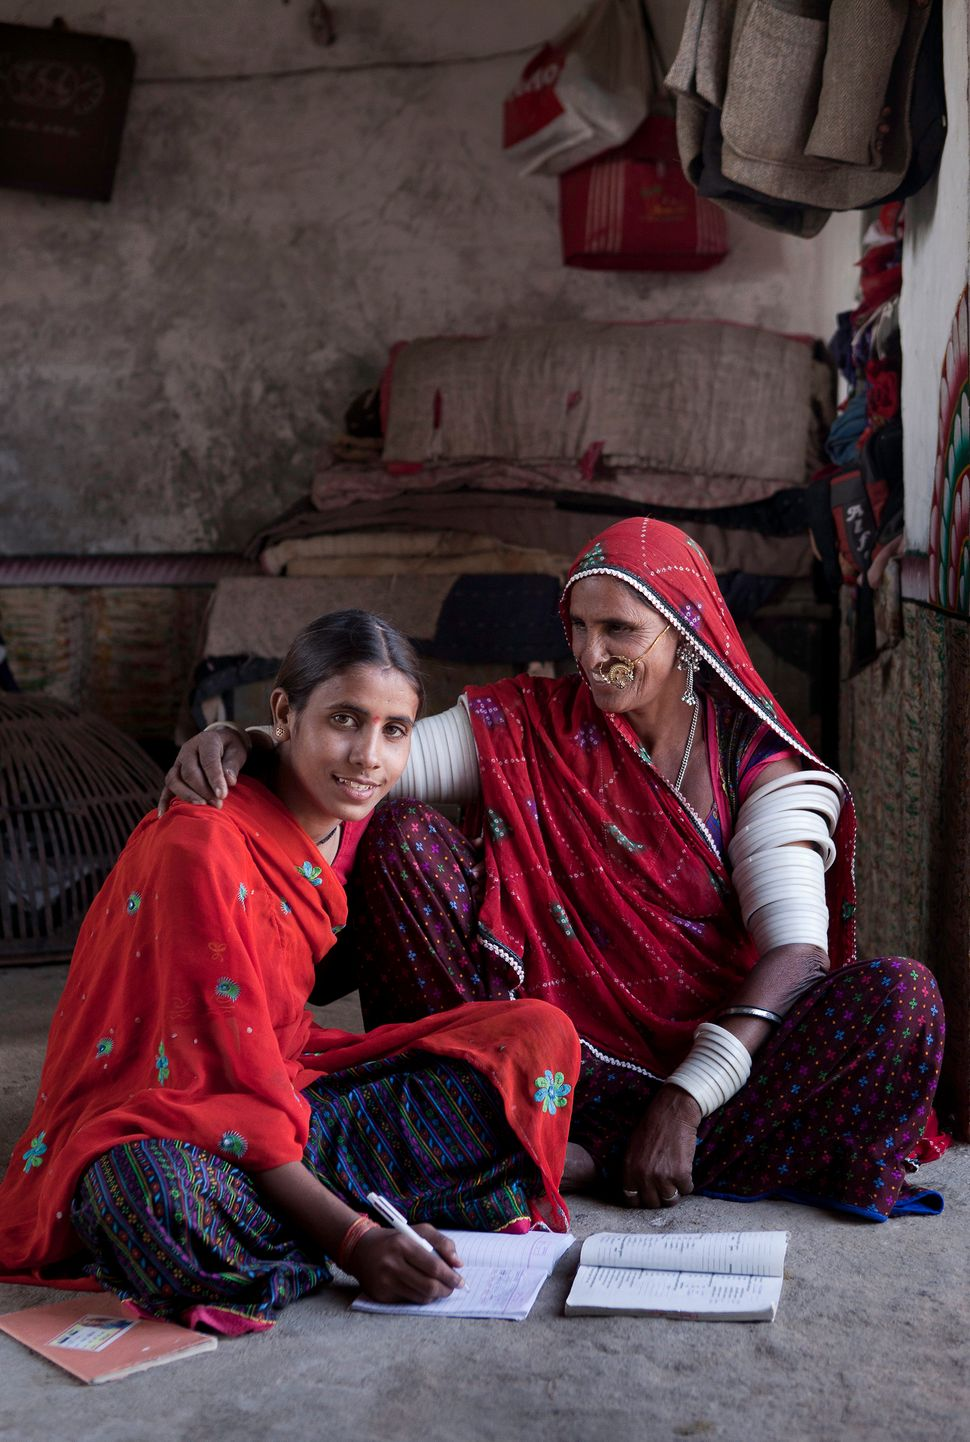 Nishi, a young woman from rural Rajasthan is pictured here with her mother, who supports and encourages her studies. The moth